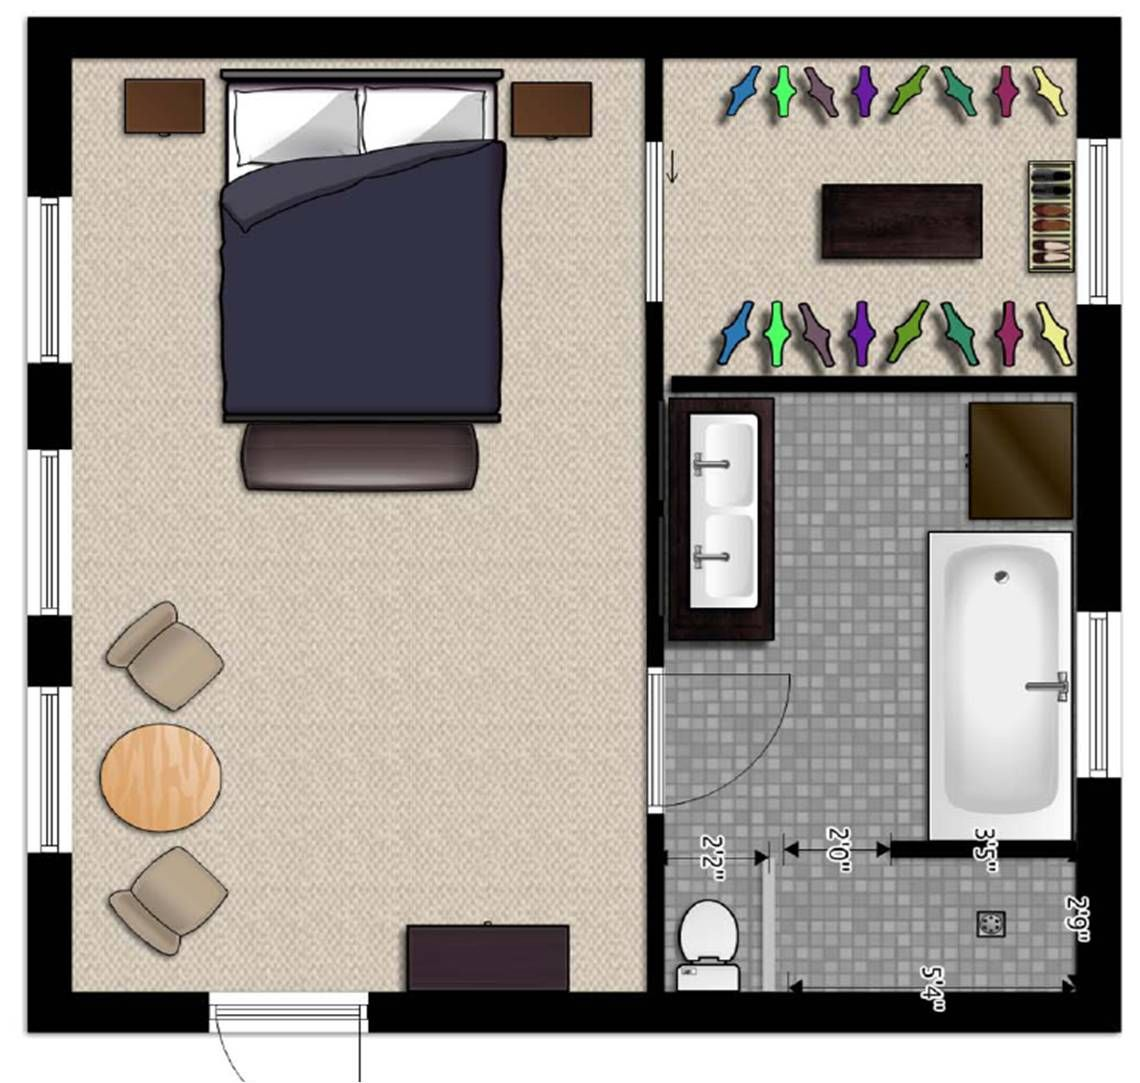 Master bedroom addition floor plans and here is the proposed floor plan for the new addition Room design site